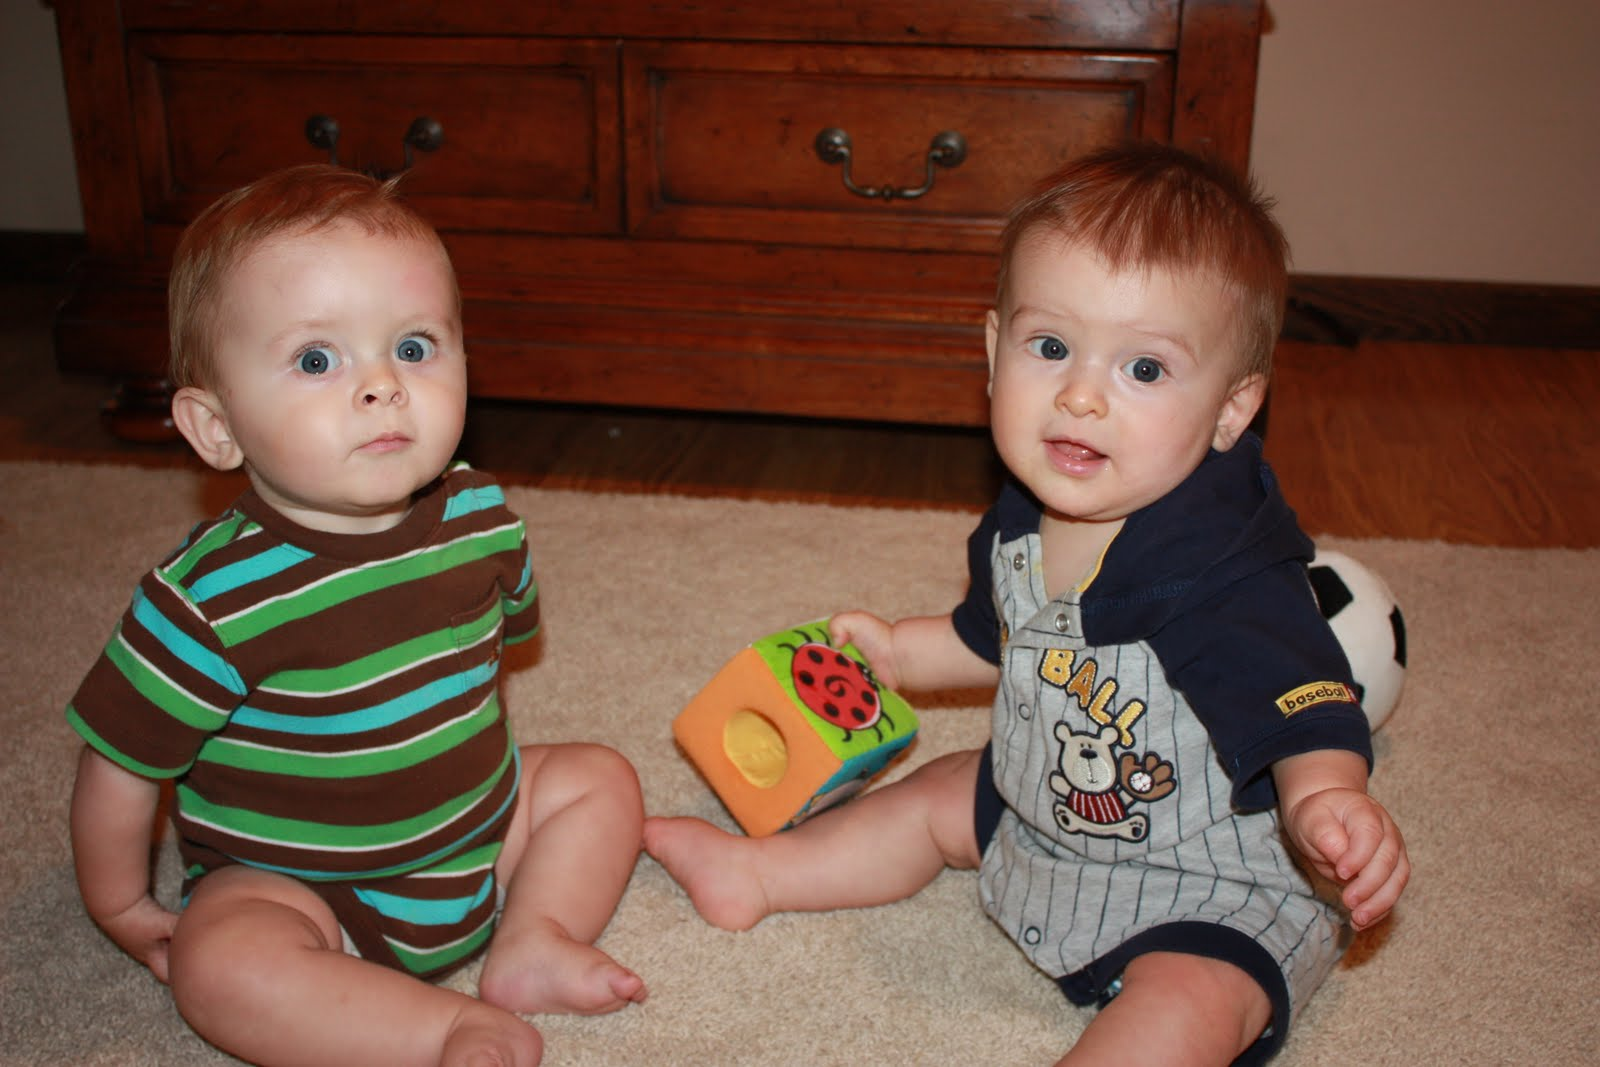 The emotional and physical development in children